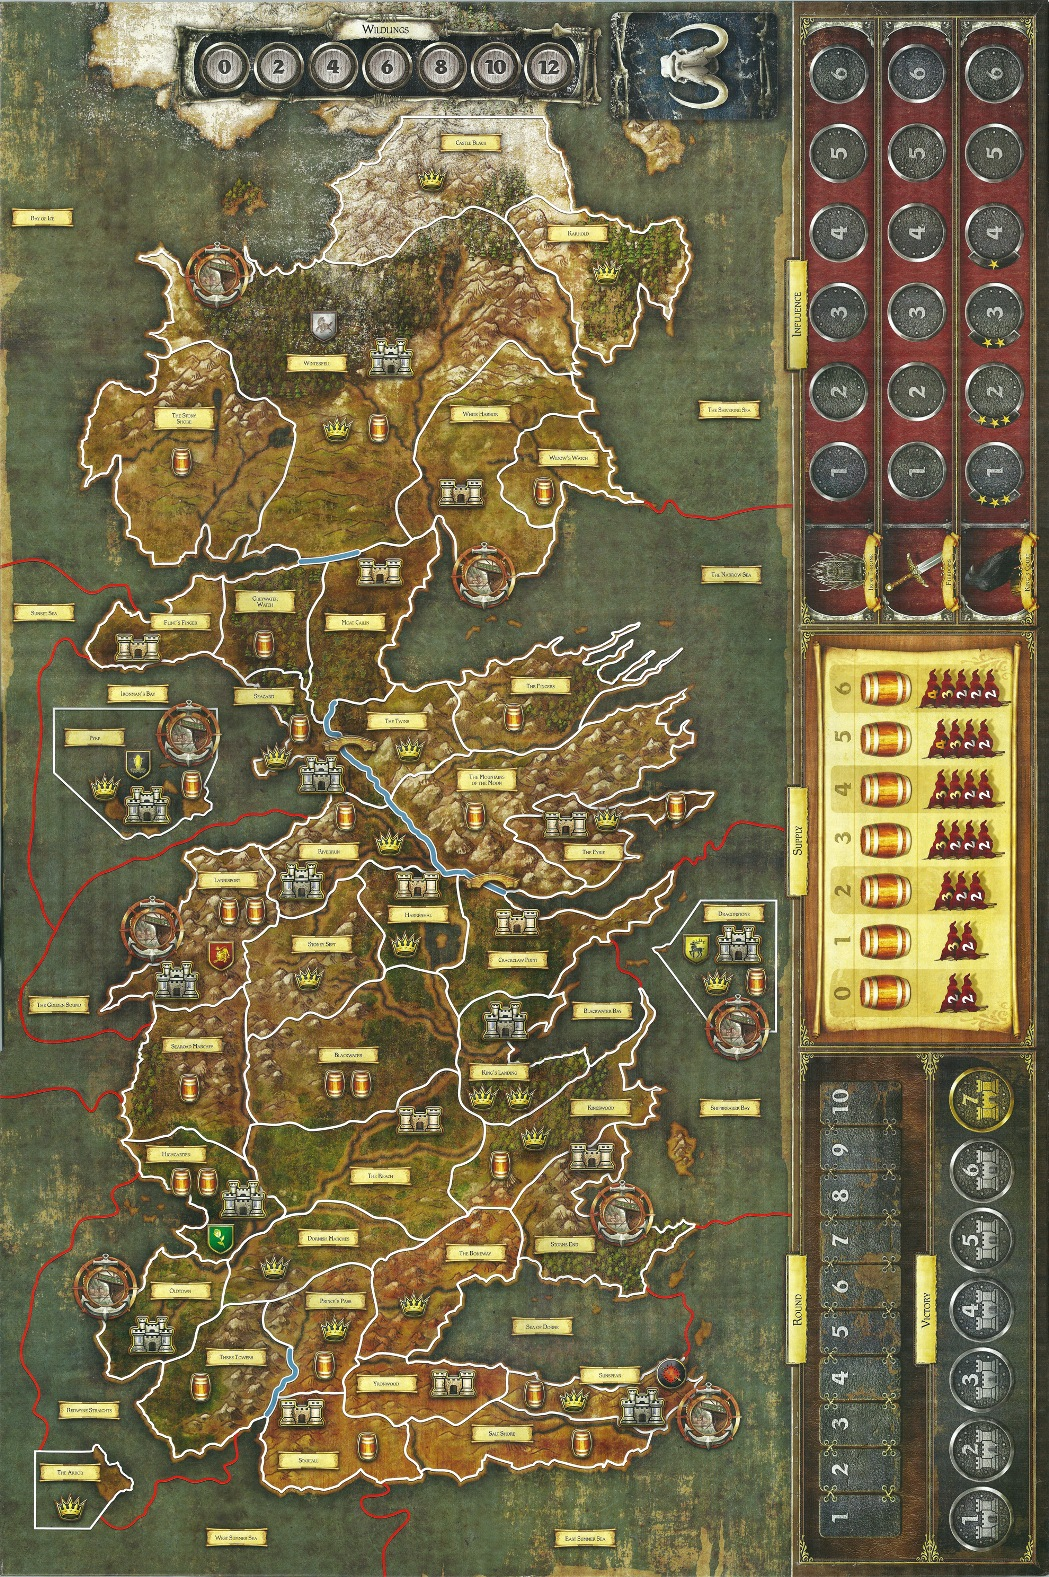 full map of westeros html with A Game Of Thrones Board Game Review on Watch The First Official Trailer For Star Wars The Force Awakens Plus Screencaps Gallery furthermore Arya Stark further Vienna Map further Google Game Thrones View Interactive Map Reveals Fantasy World Unprecedented Helps Avoid Spoilers further 418525 Batalla Del Bosque De Teutoburgo.